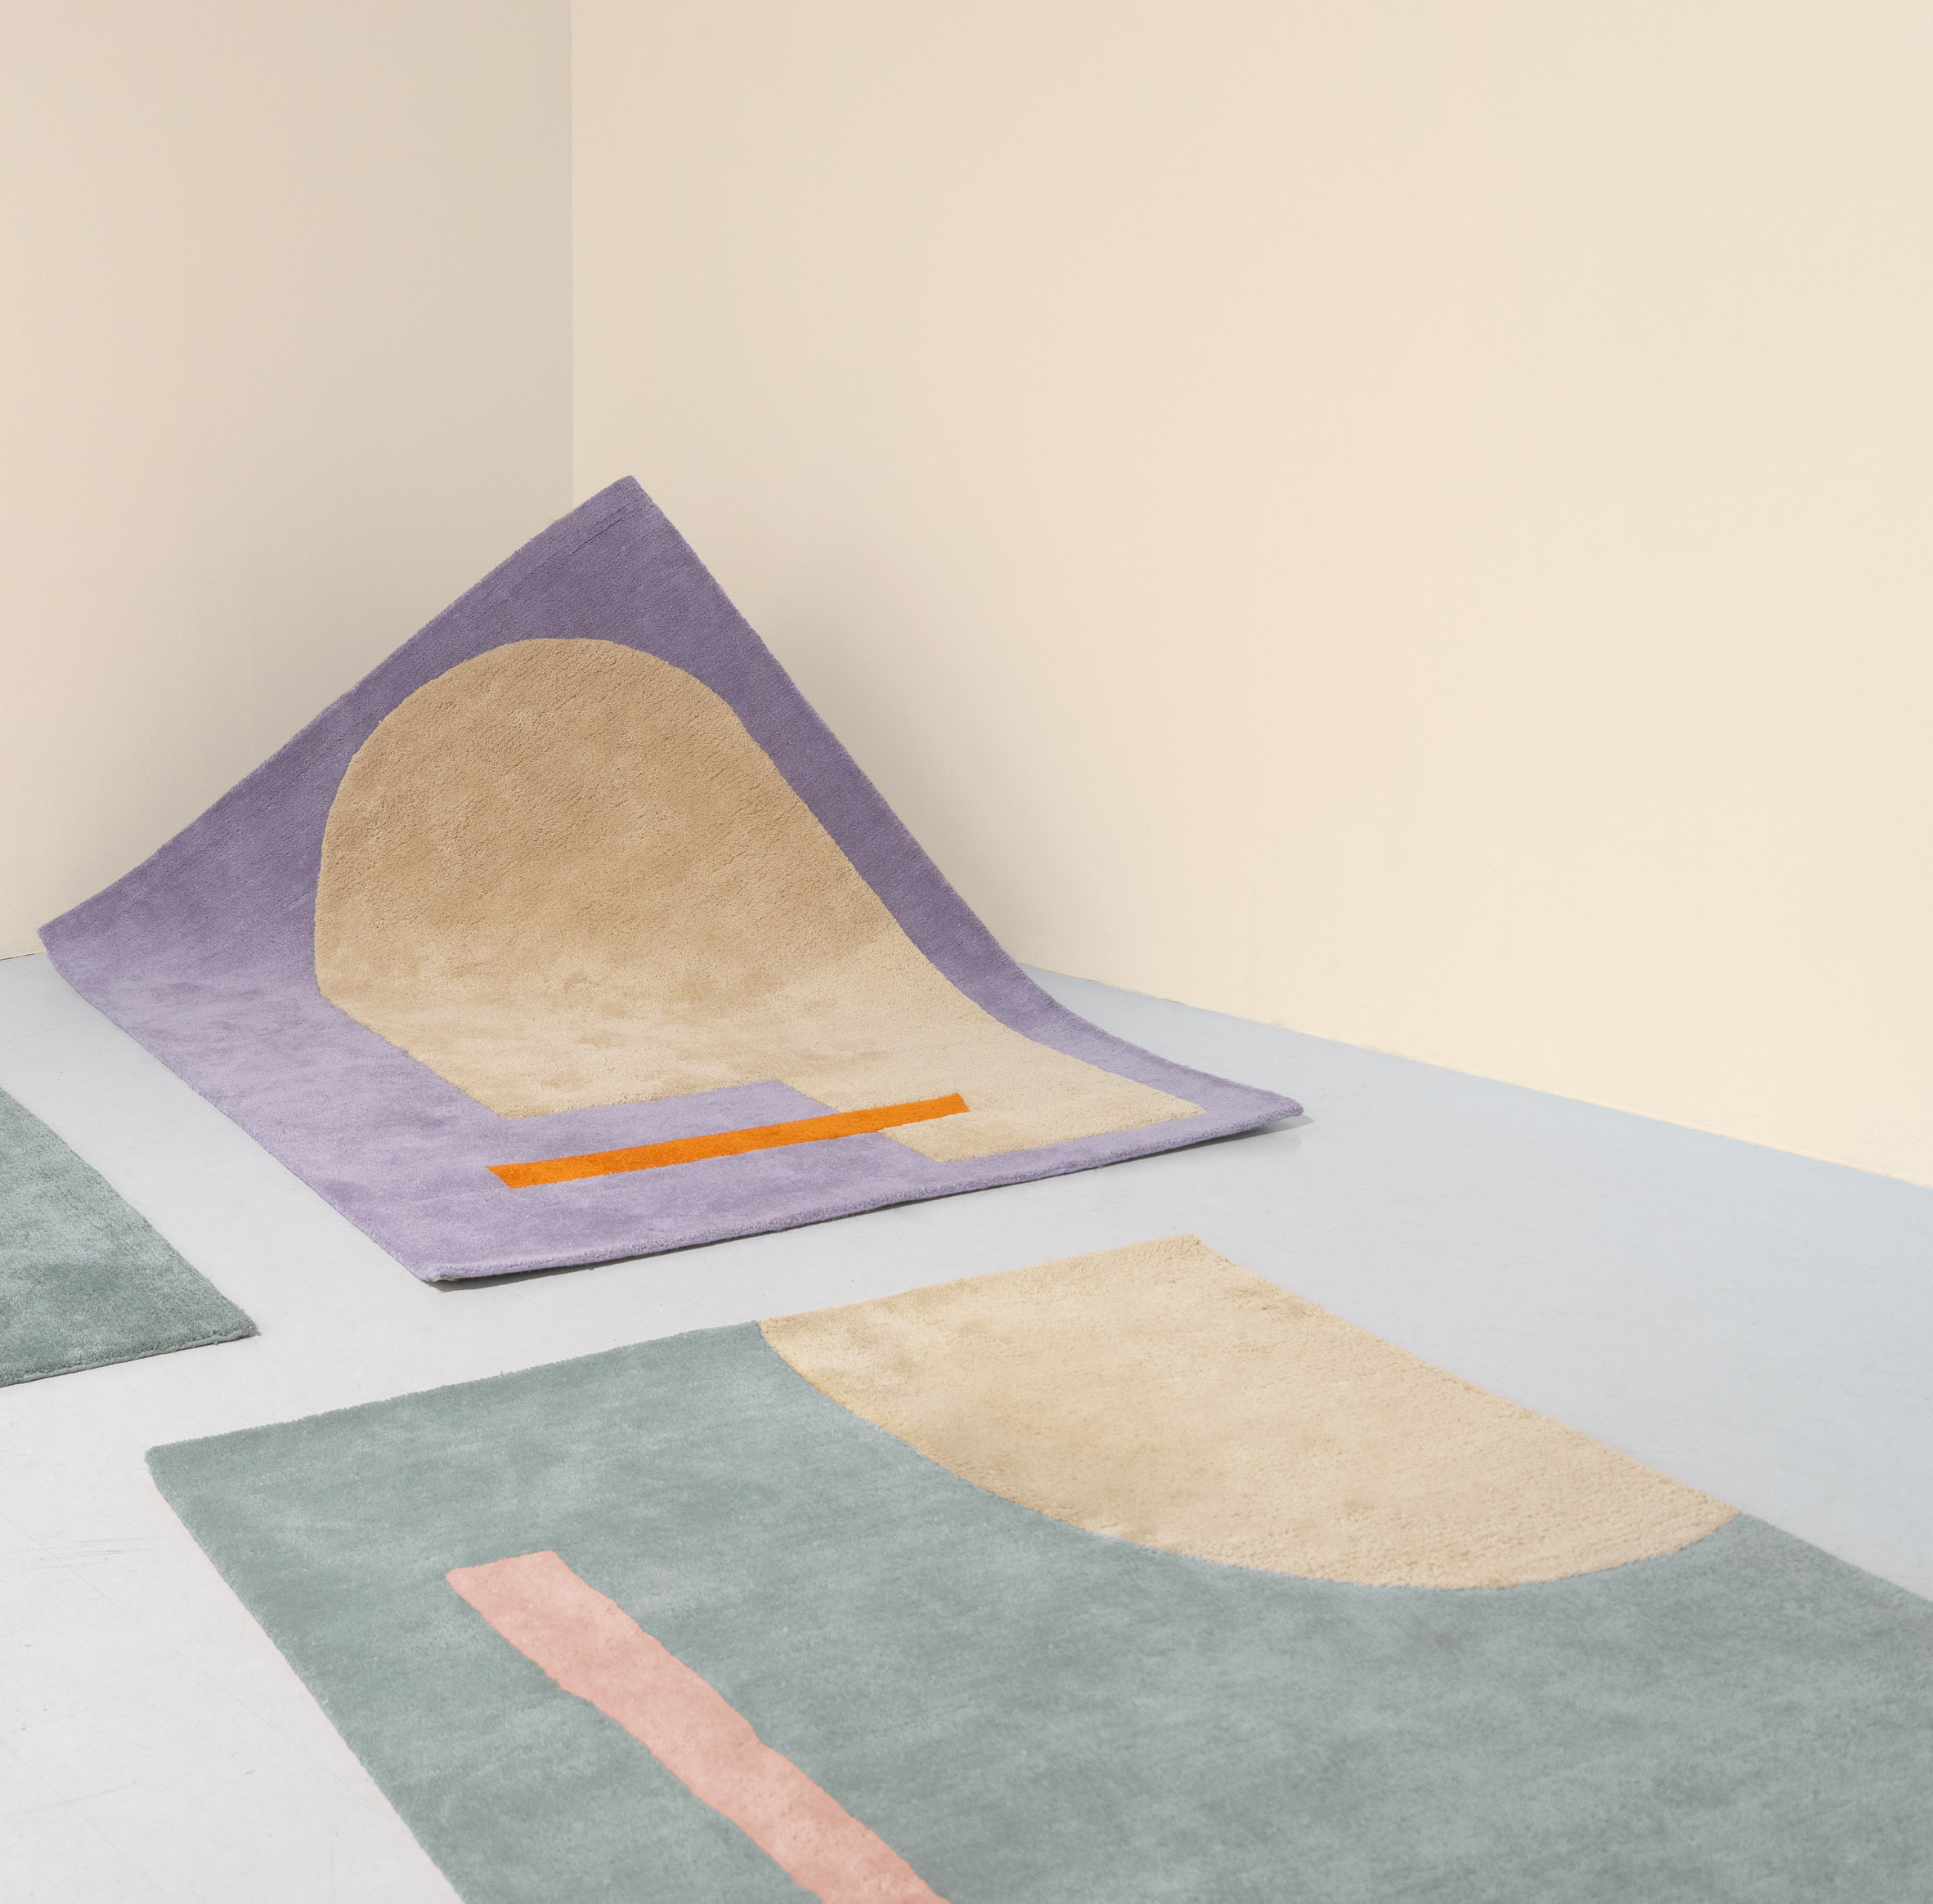 Playground and Canvas rugs from the Petite collection